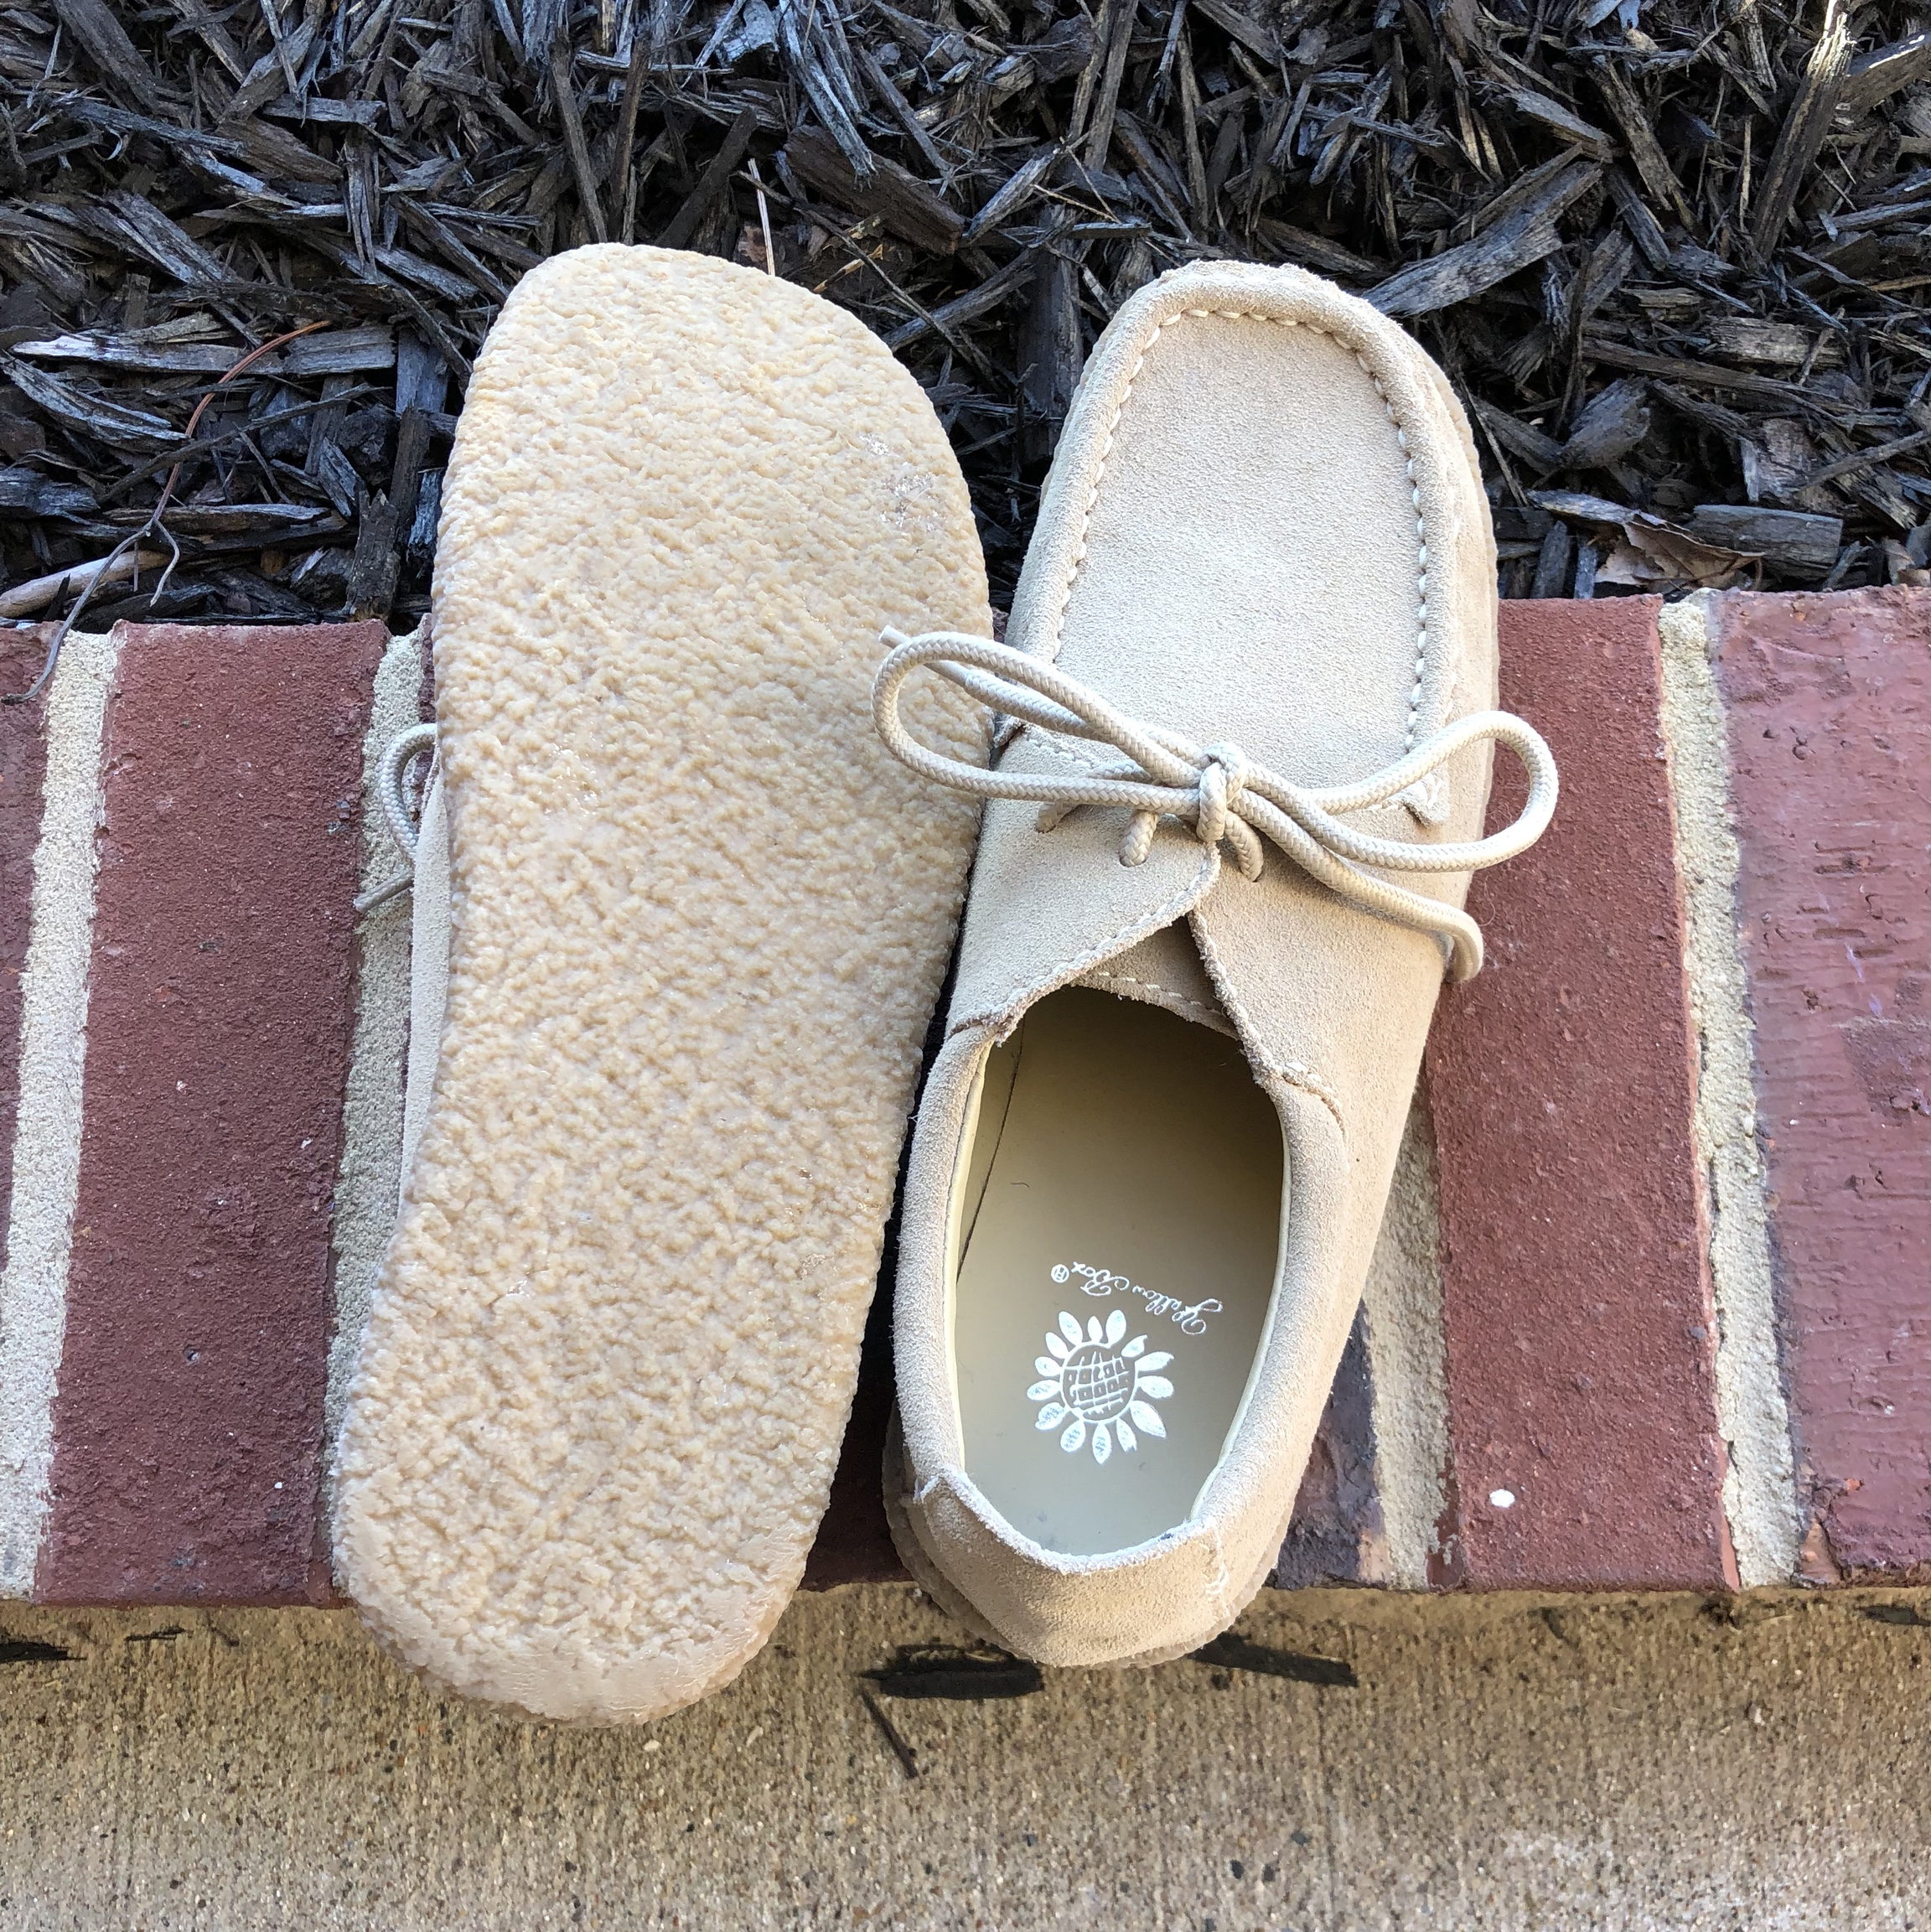 Suede wallabee look-a-likes. these are